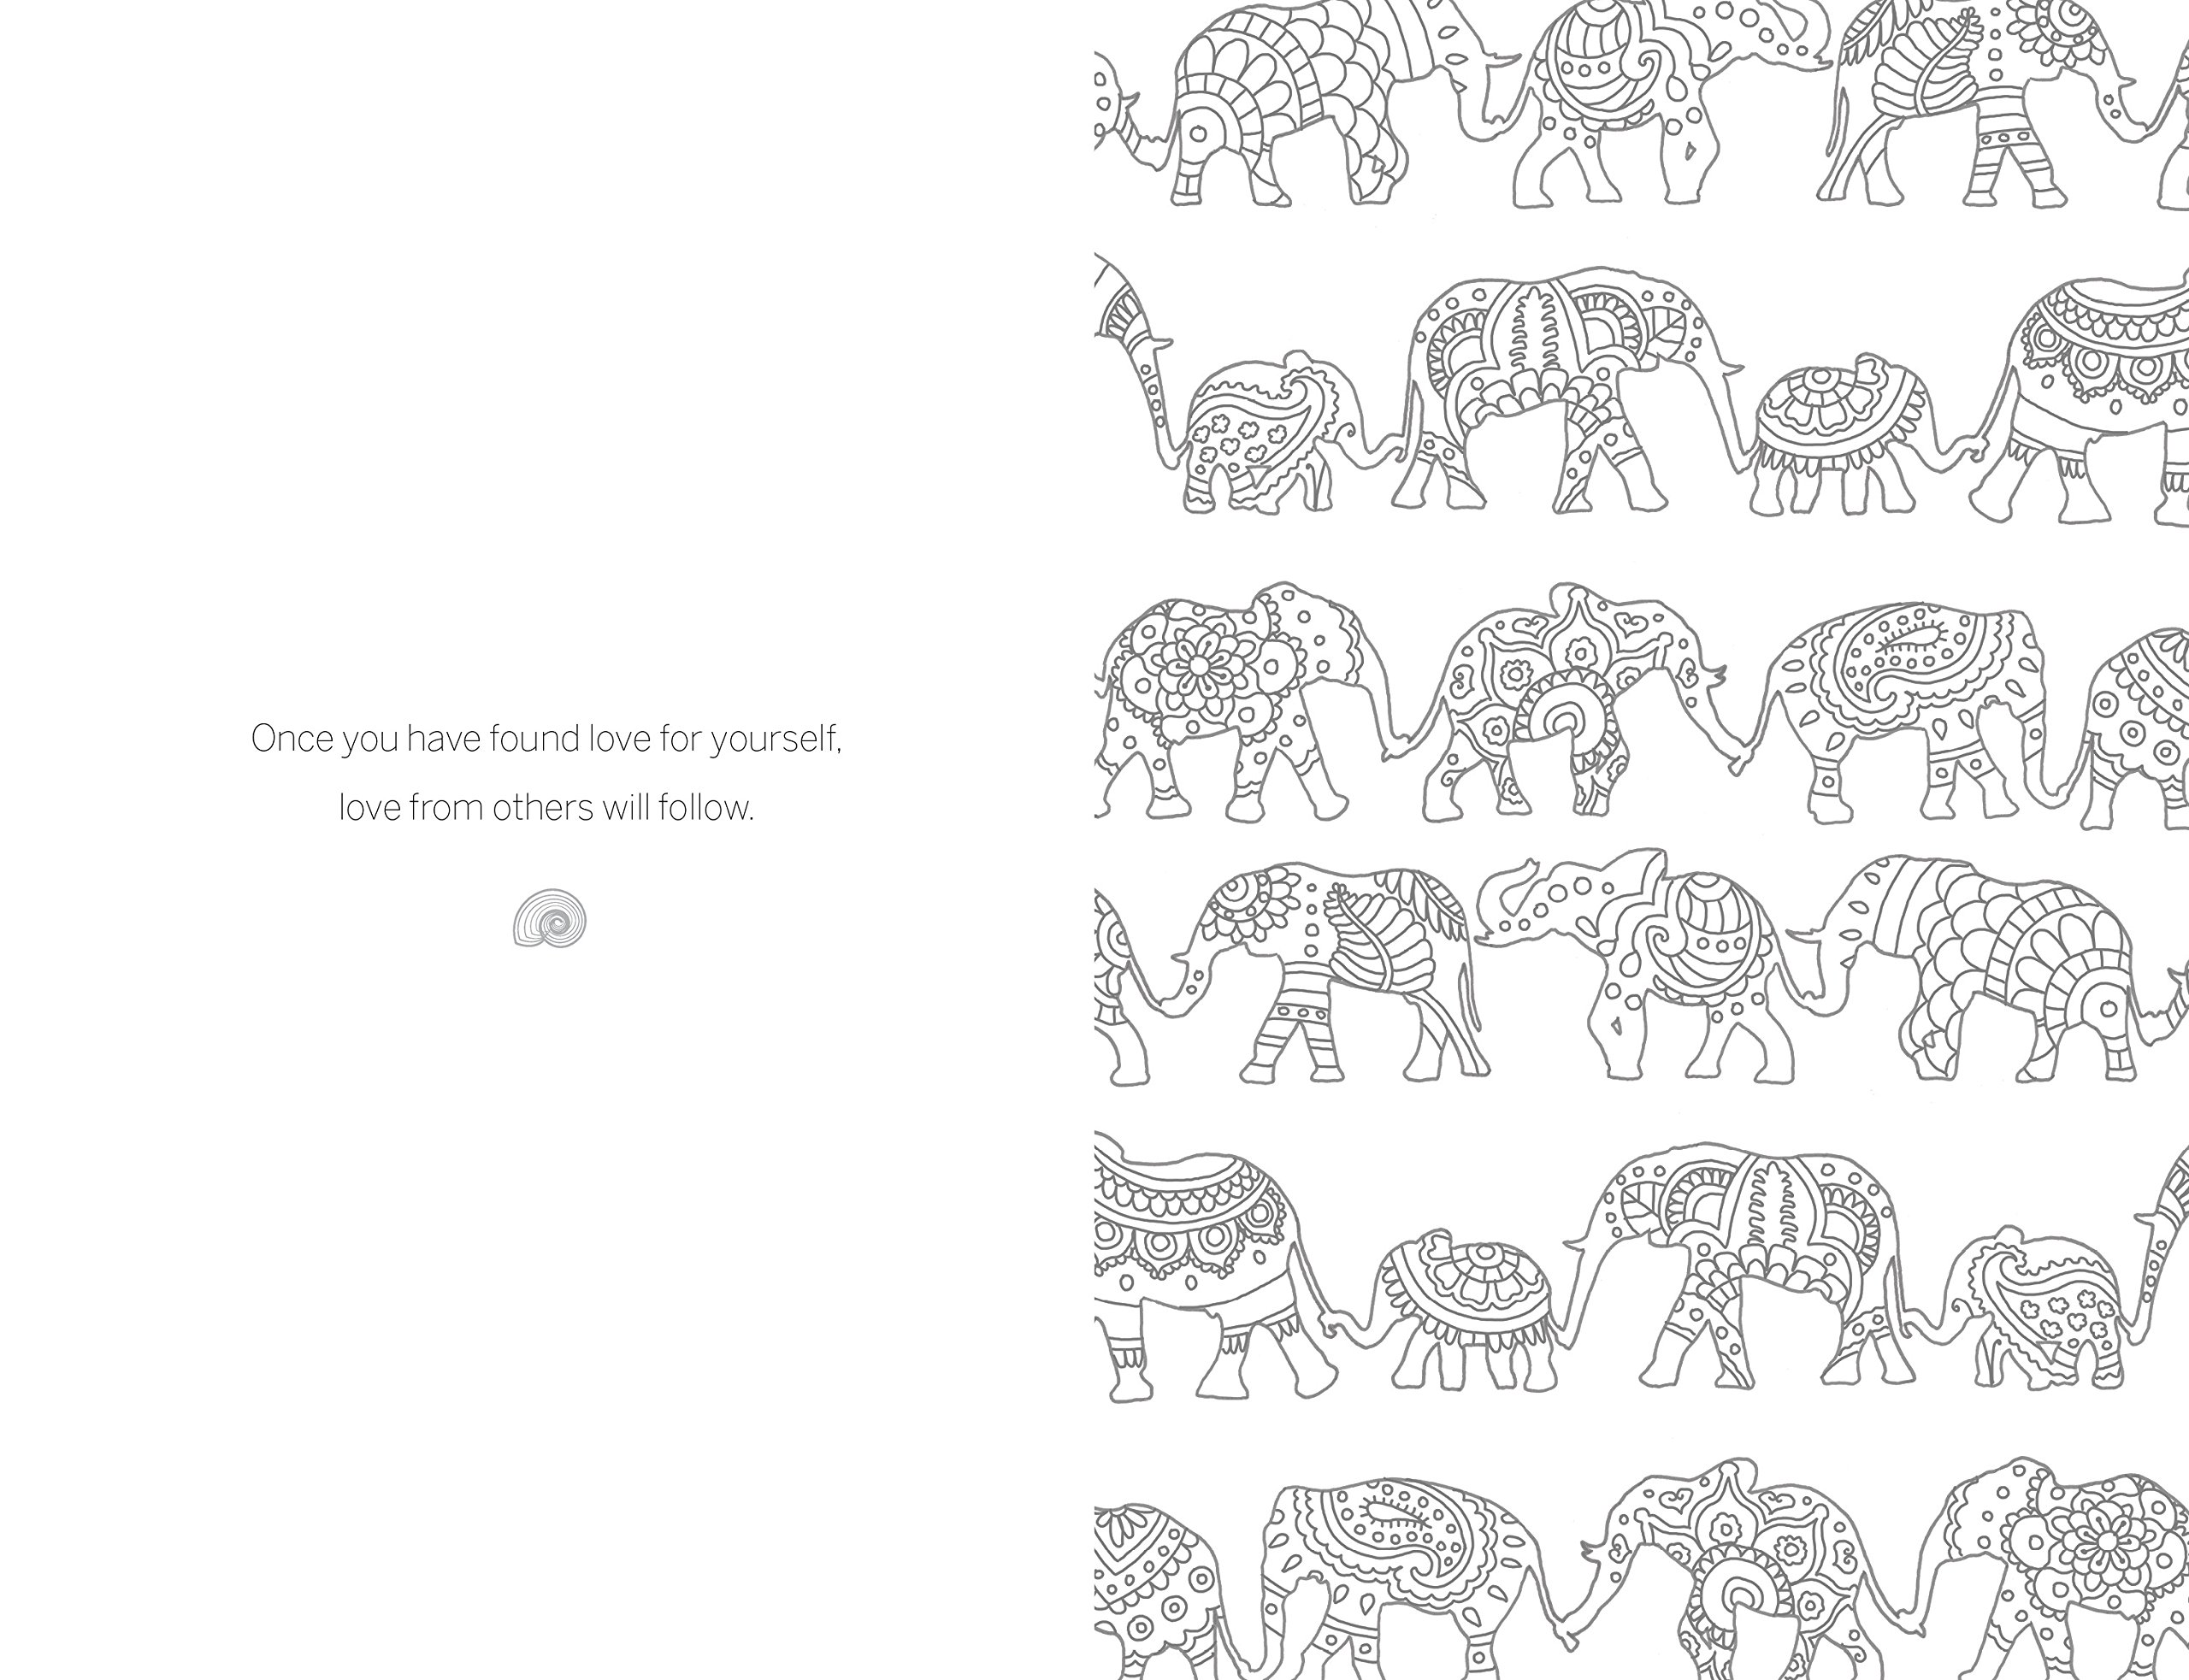 Zen colouring book animals - The Little Book Of Colouring Animal Kingdom Peace In Your Pocket Amazon Co Uk Peace In Your Pocket Amber Anderson 9781784296452 Books